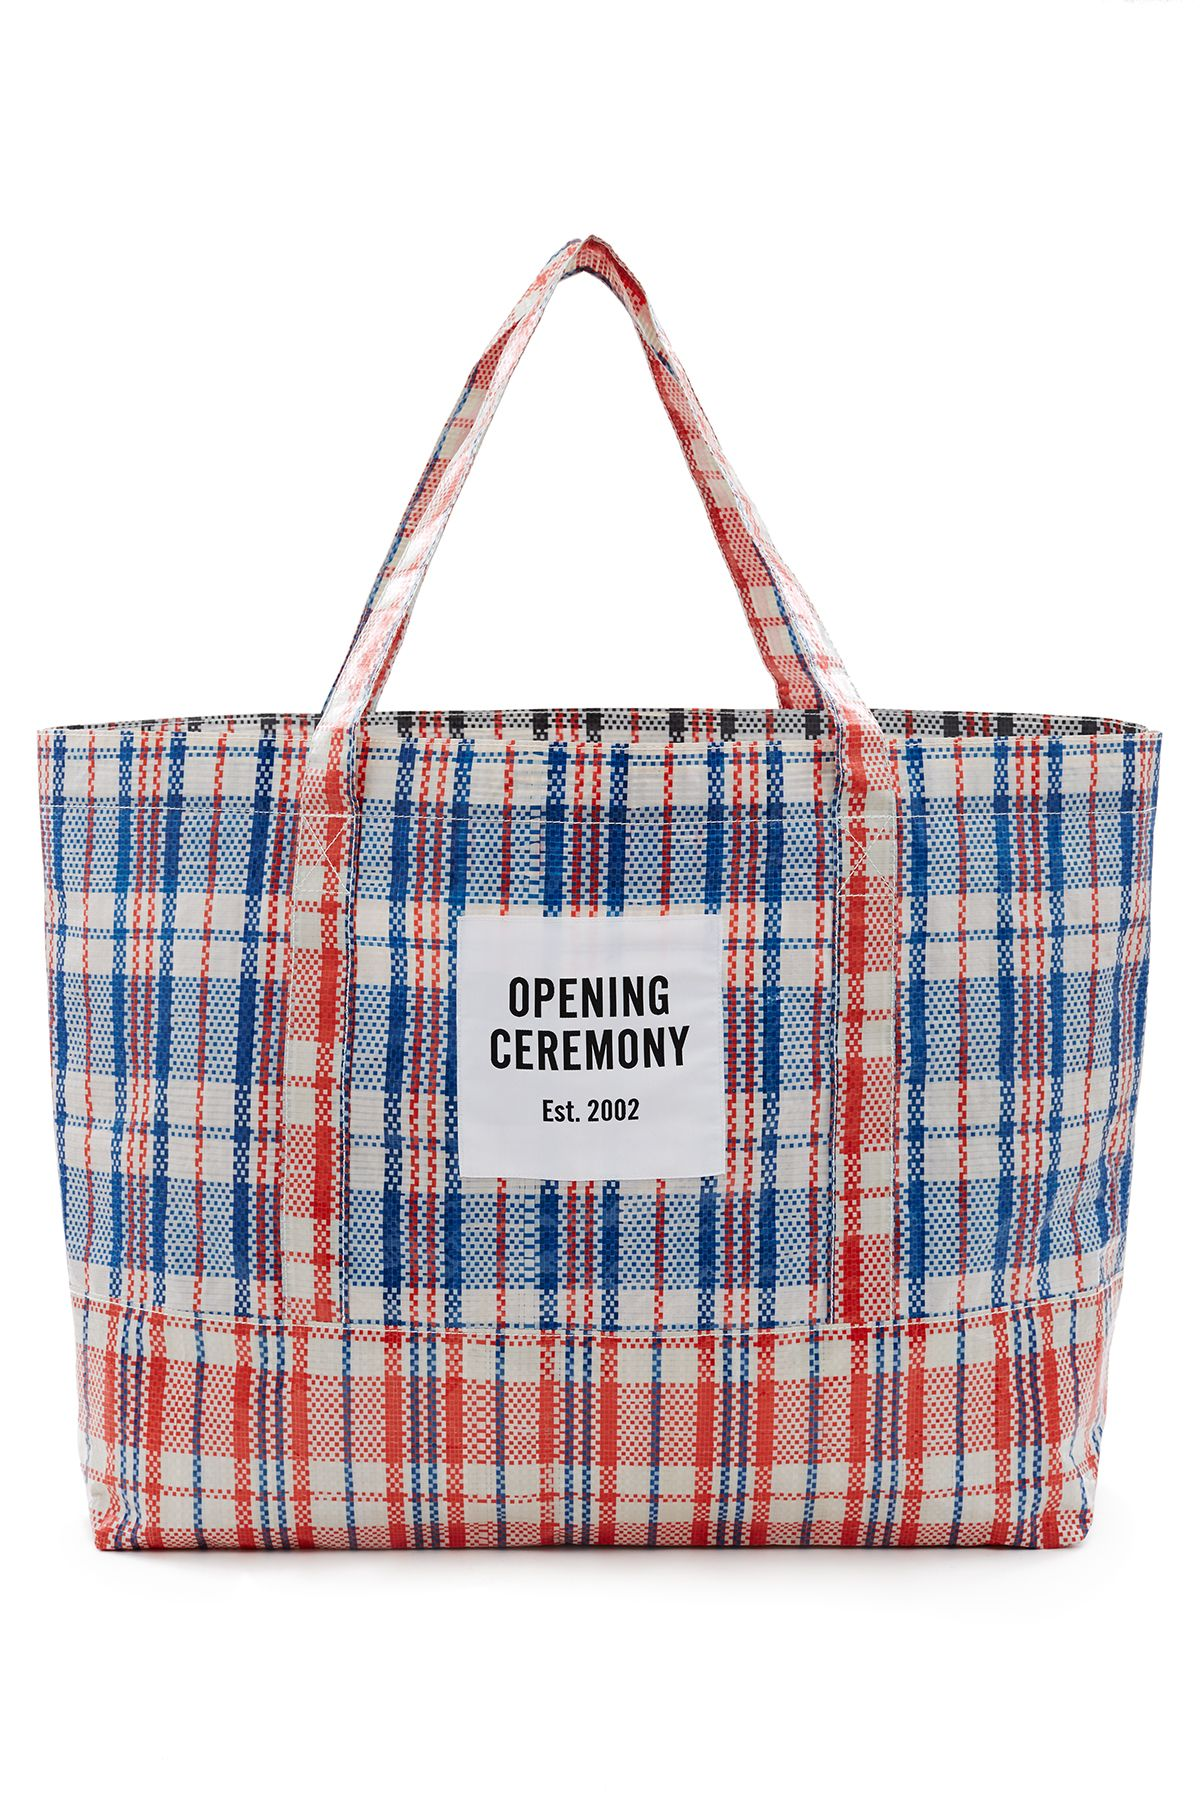 Opening Ceremony Medium Chinatown Tote Bag - MEN - OPENING ...